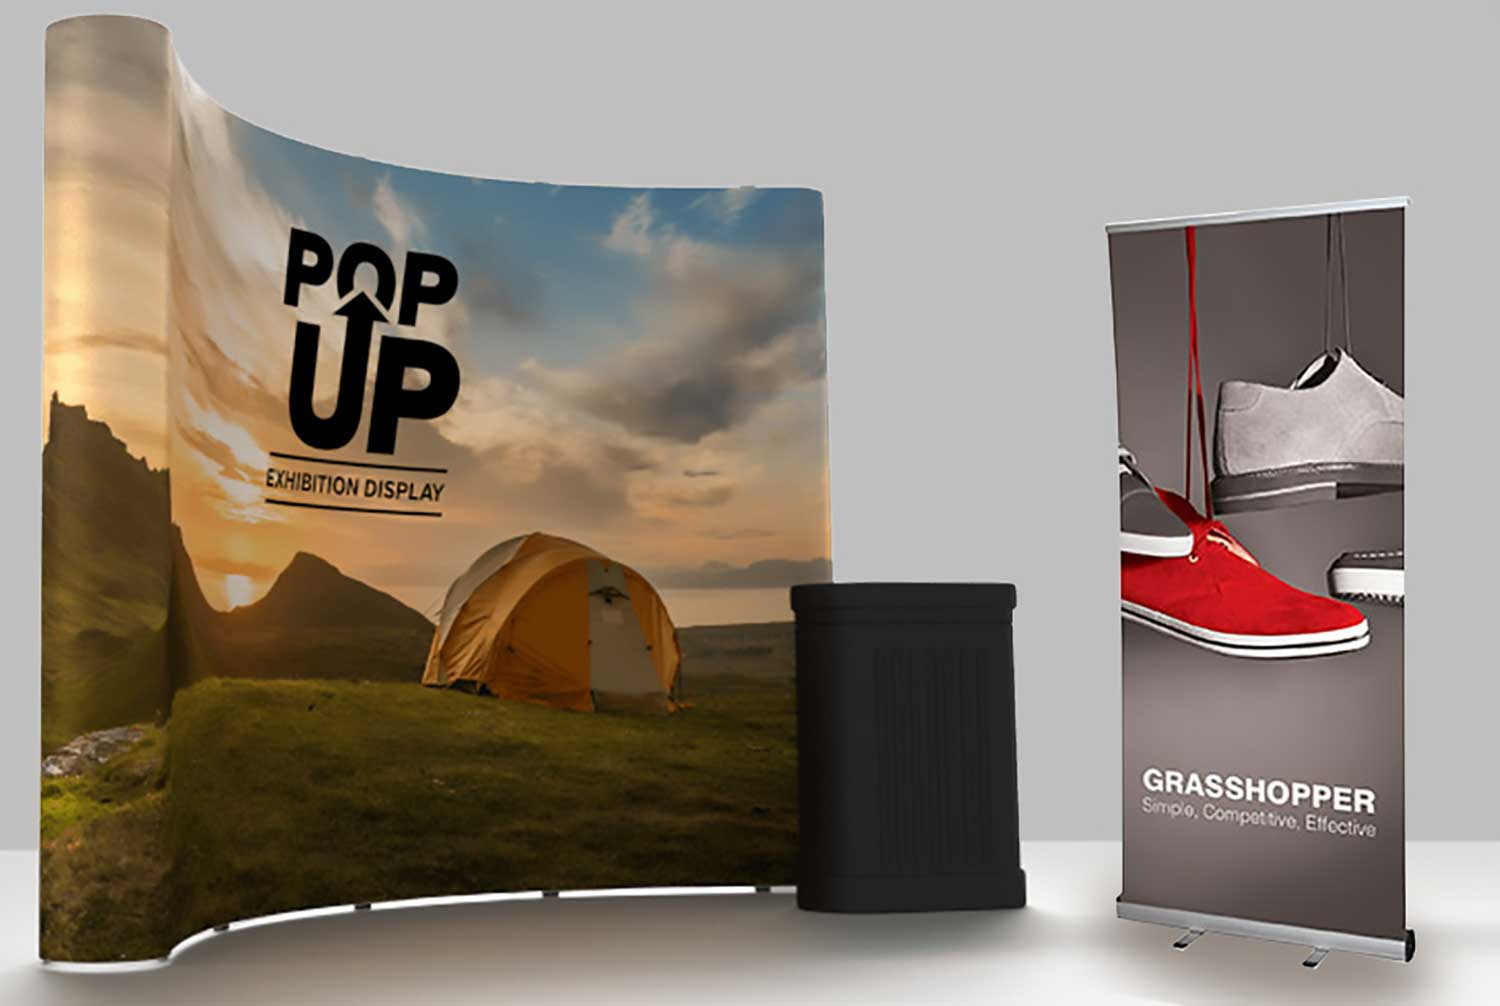 Image of a popup exhibition stand, podium and roller banner.